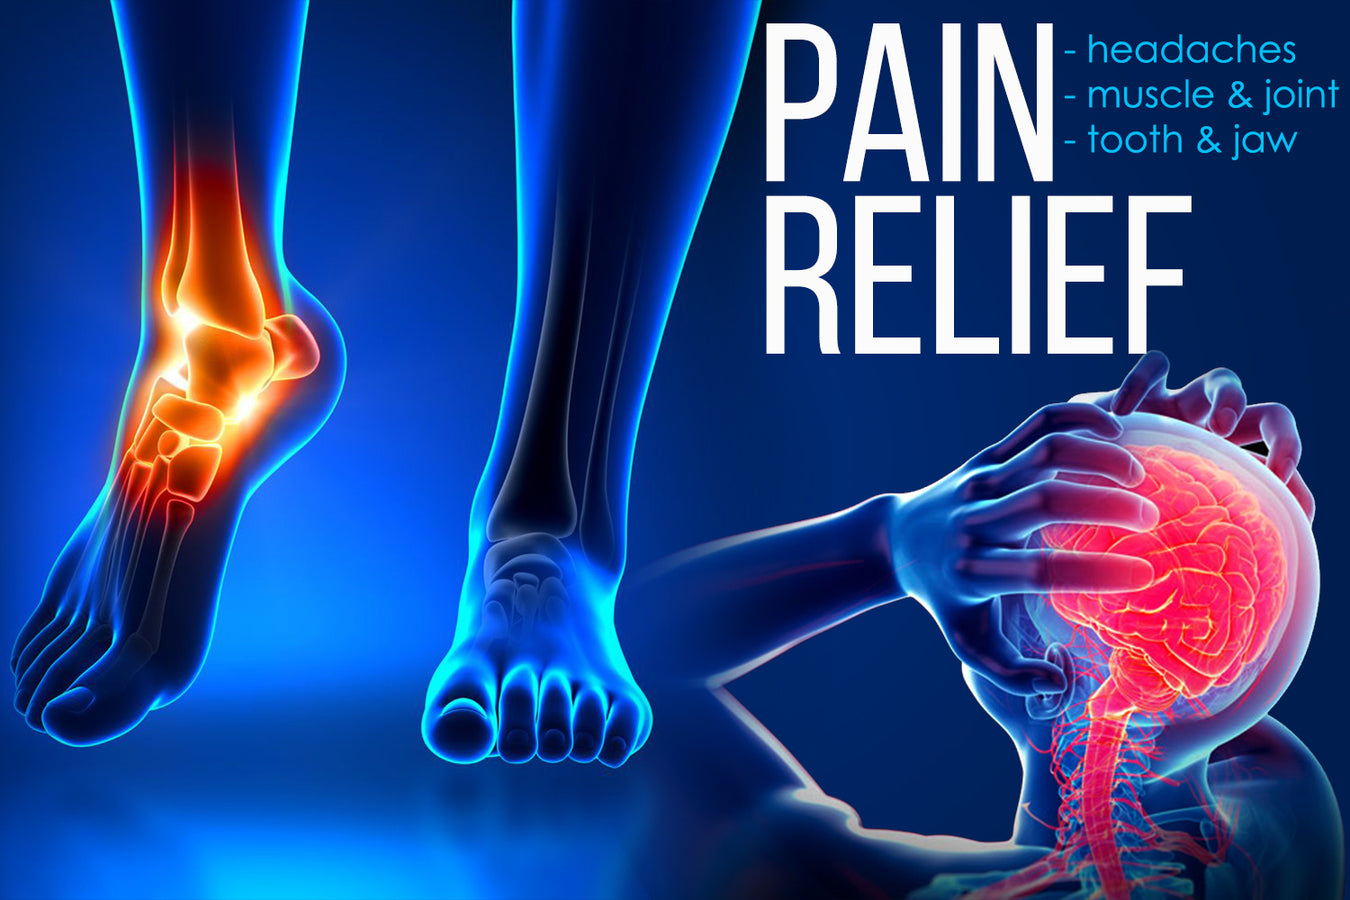 PAIN RELIEF headaches, muscle & joint, tooth & jaw